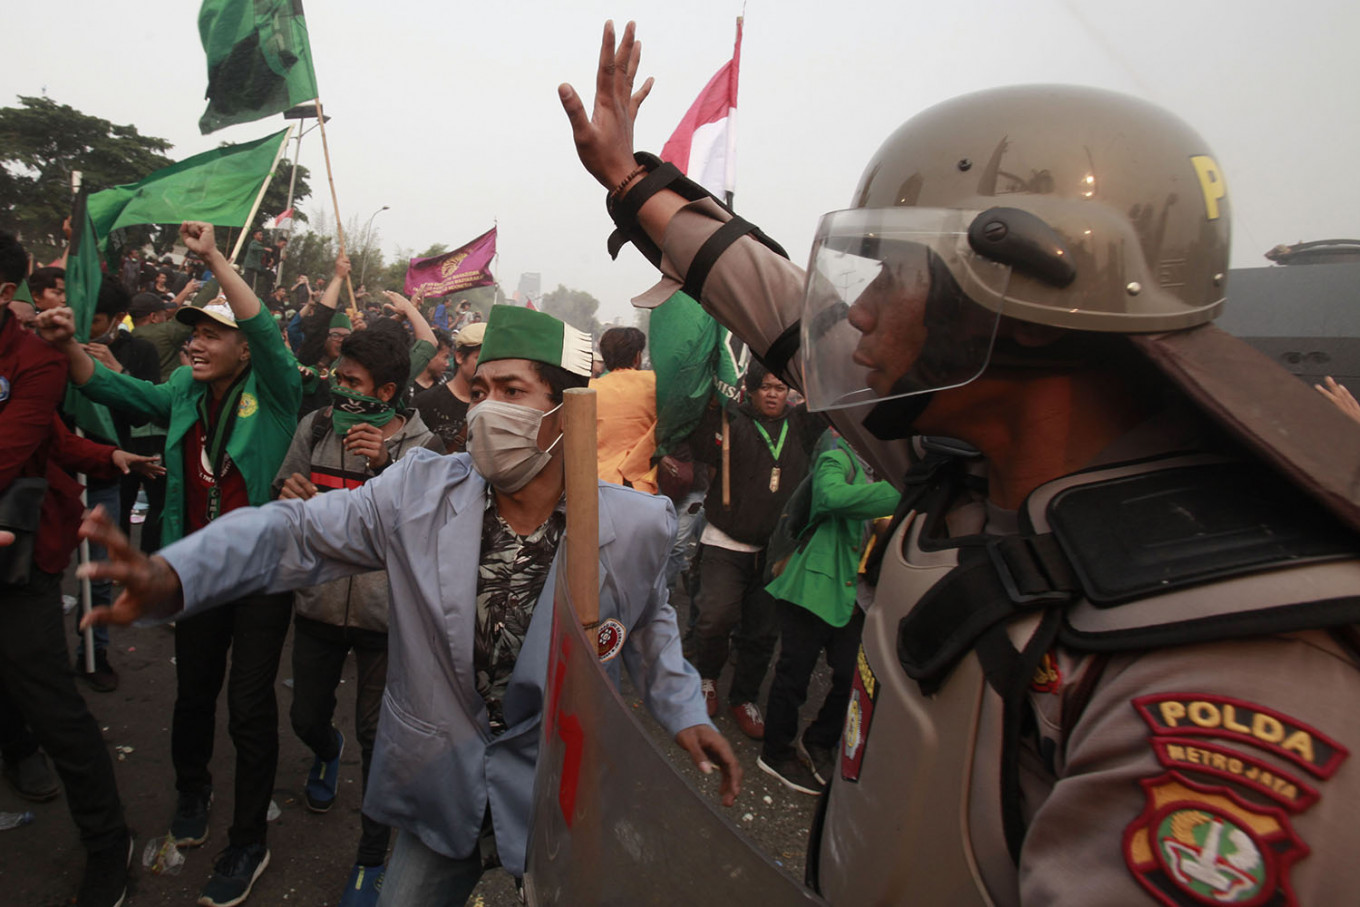 2019 saw rise of new resistance after Indonesia failed to protect rights: Amnesty